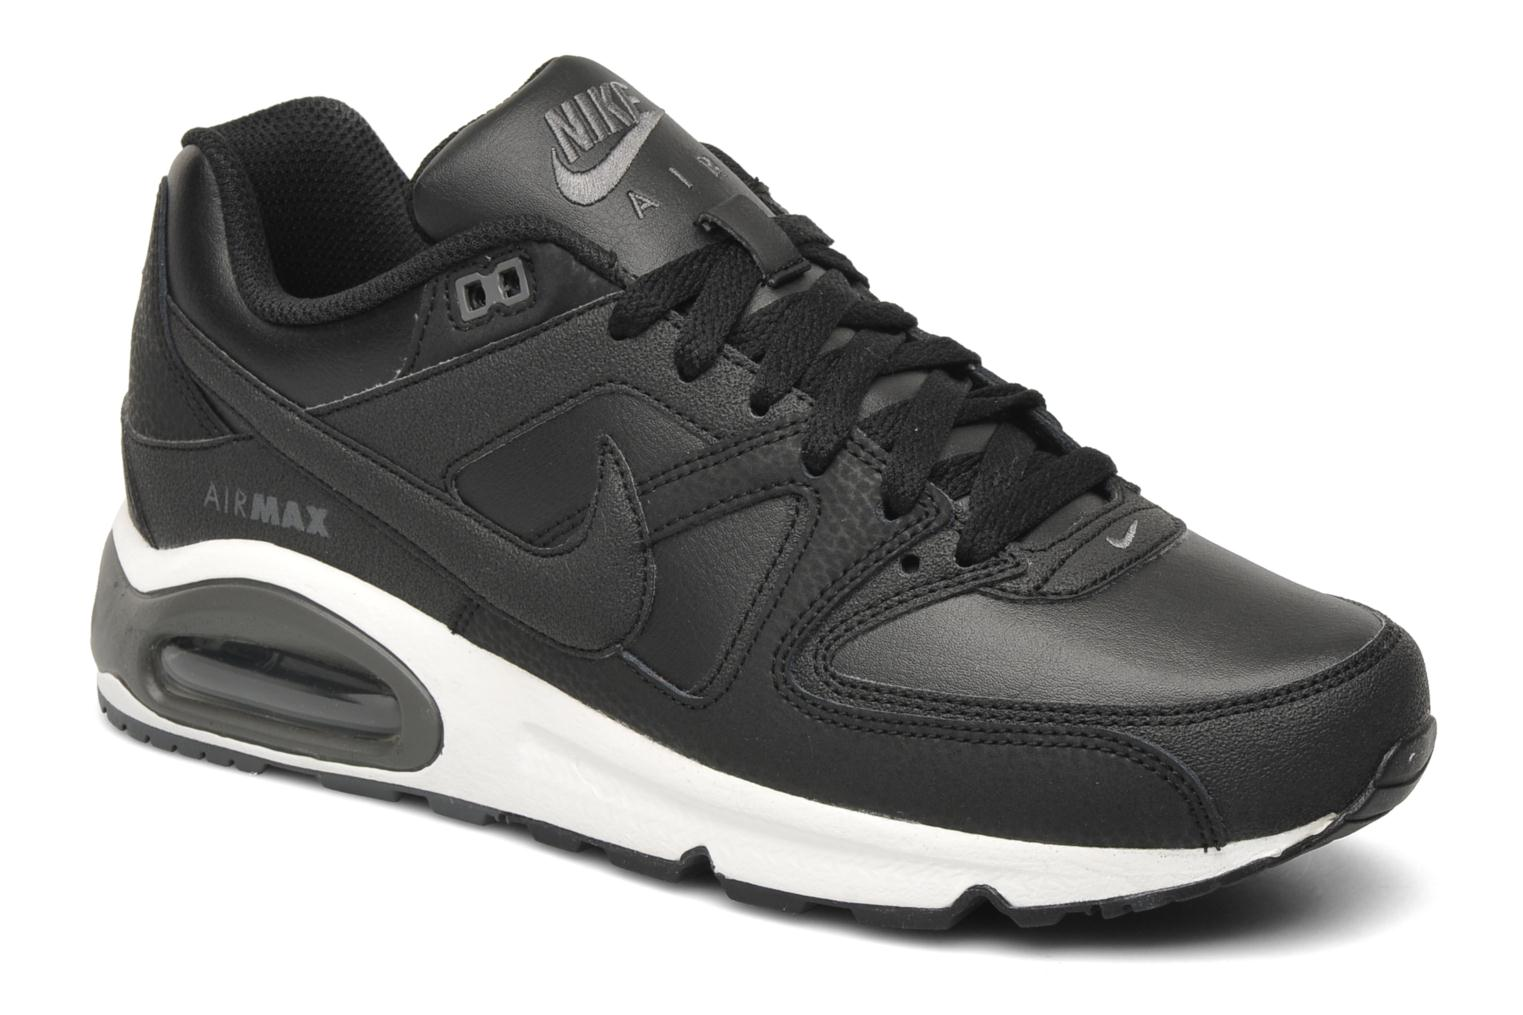 brand new c2a03 d42ab ... Baskets Nike Air max command leather Noir vue détail paire ...